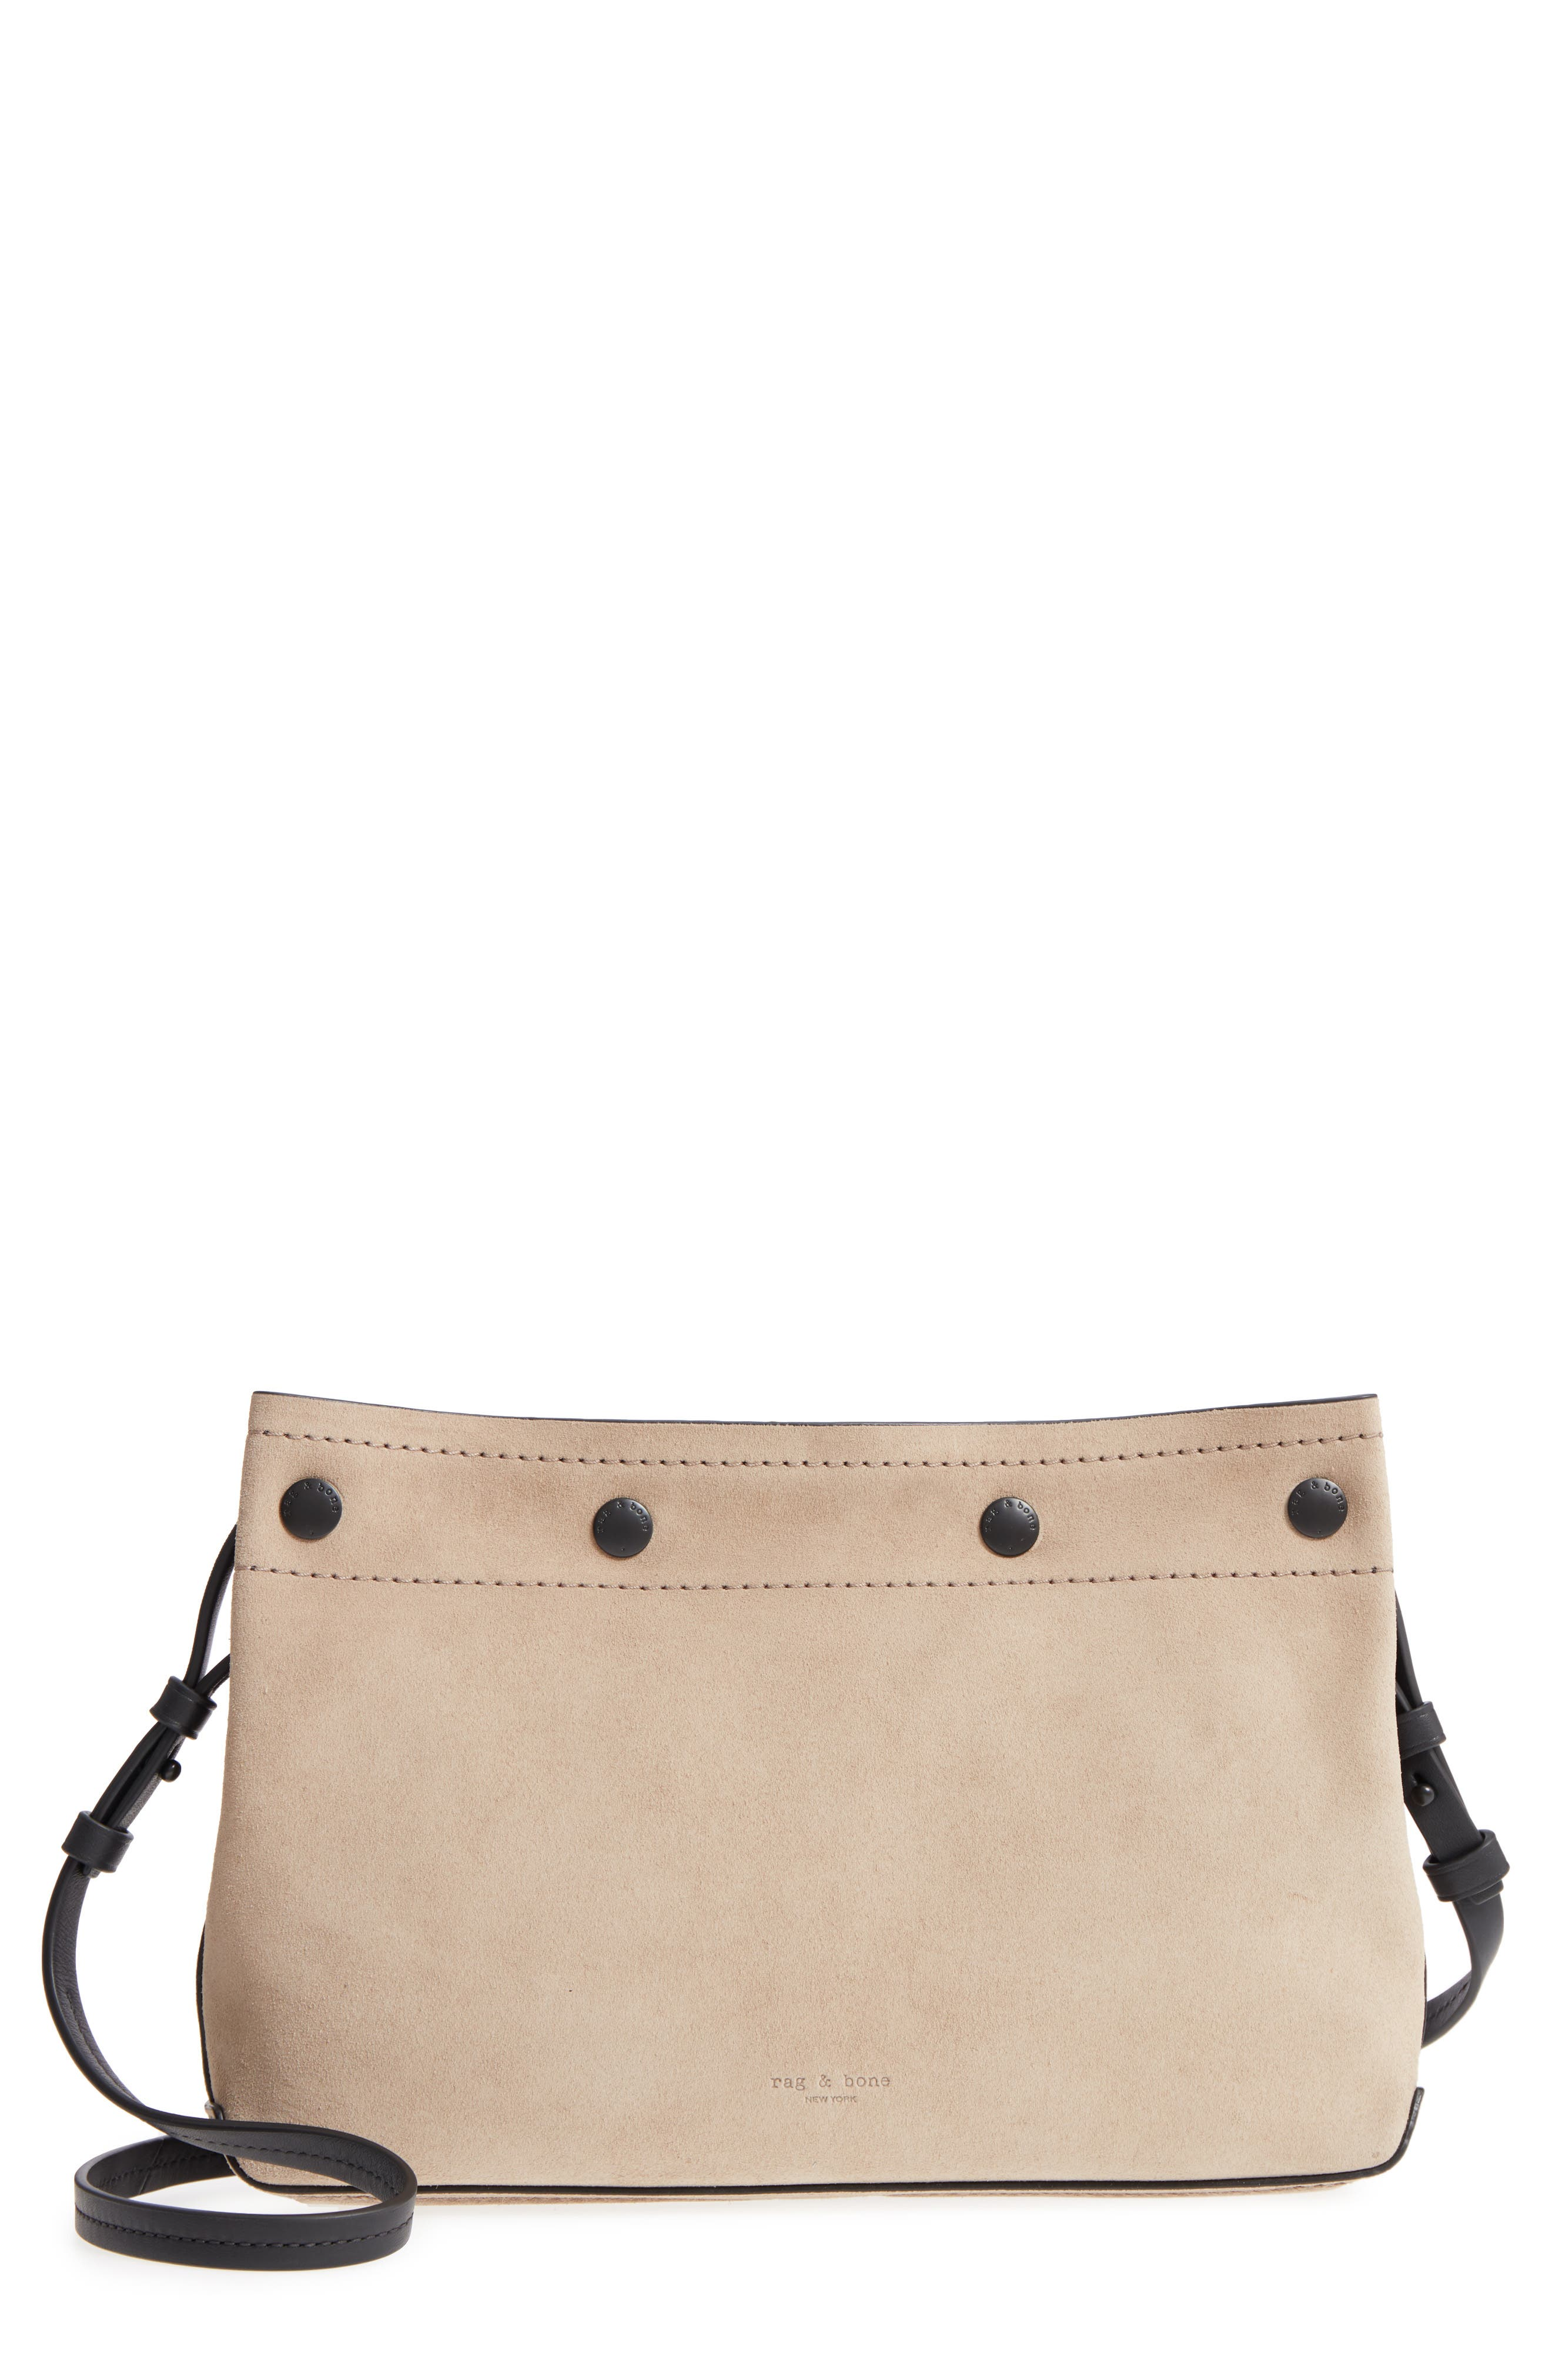 Compass Leather Crossbody Bag,                             Main thumbnail 1, color,                             Warm Grey Suede